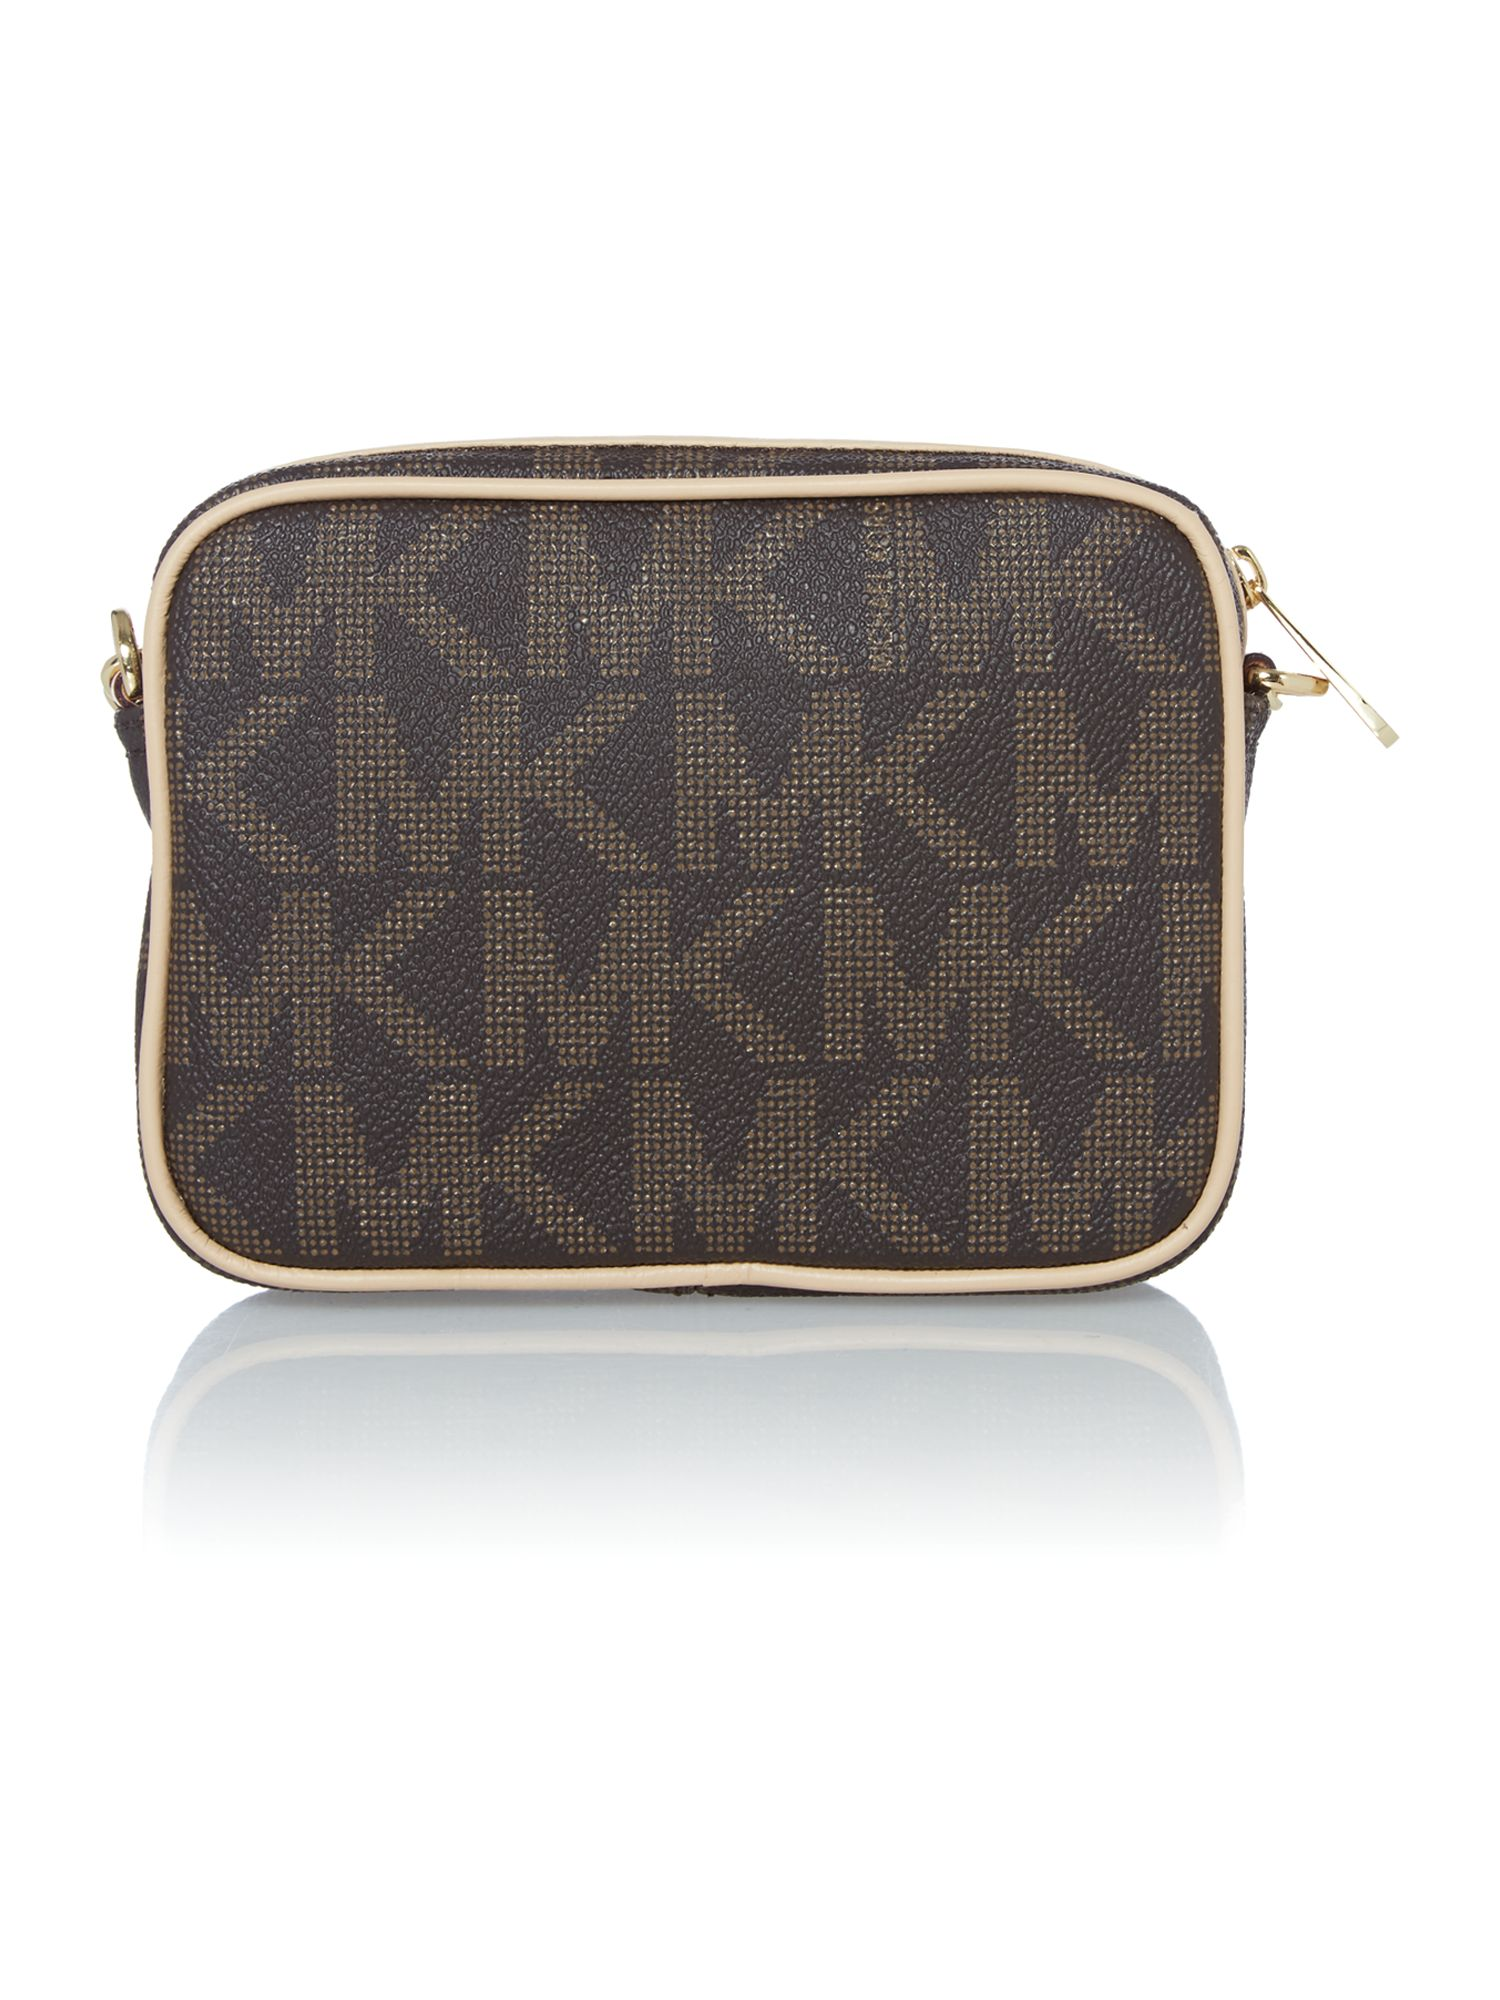 Jet Set Item brown logo cross body bag